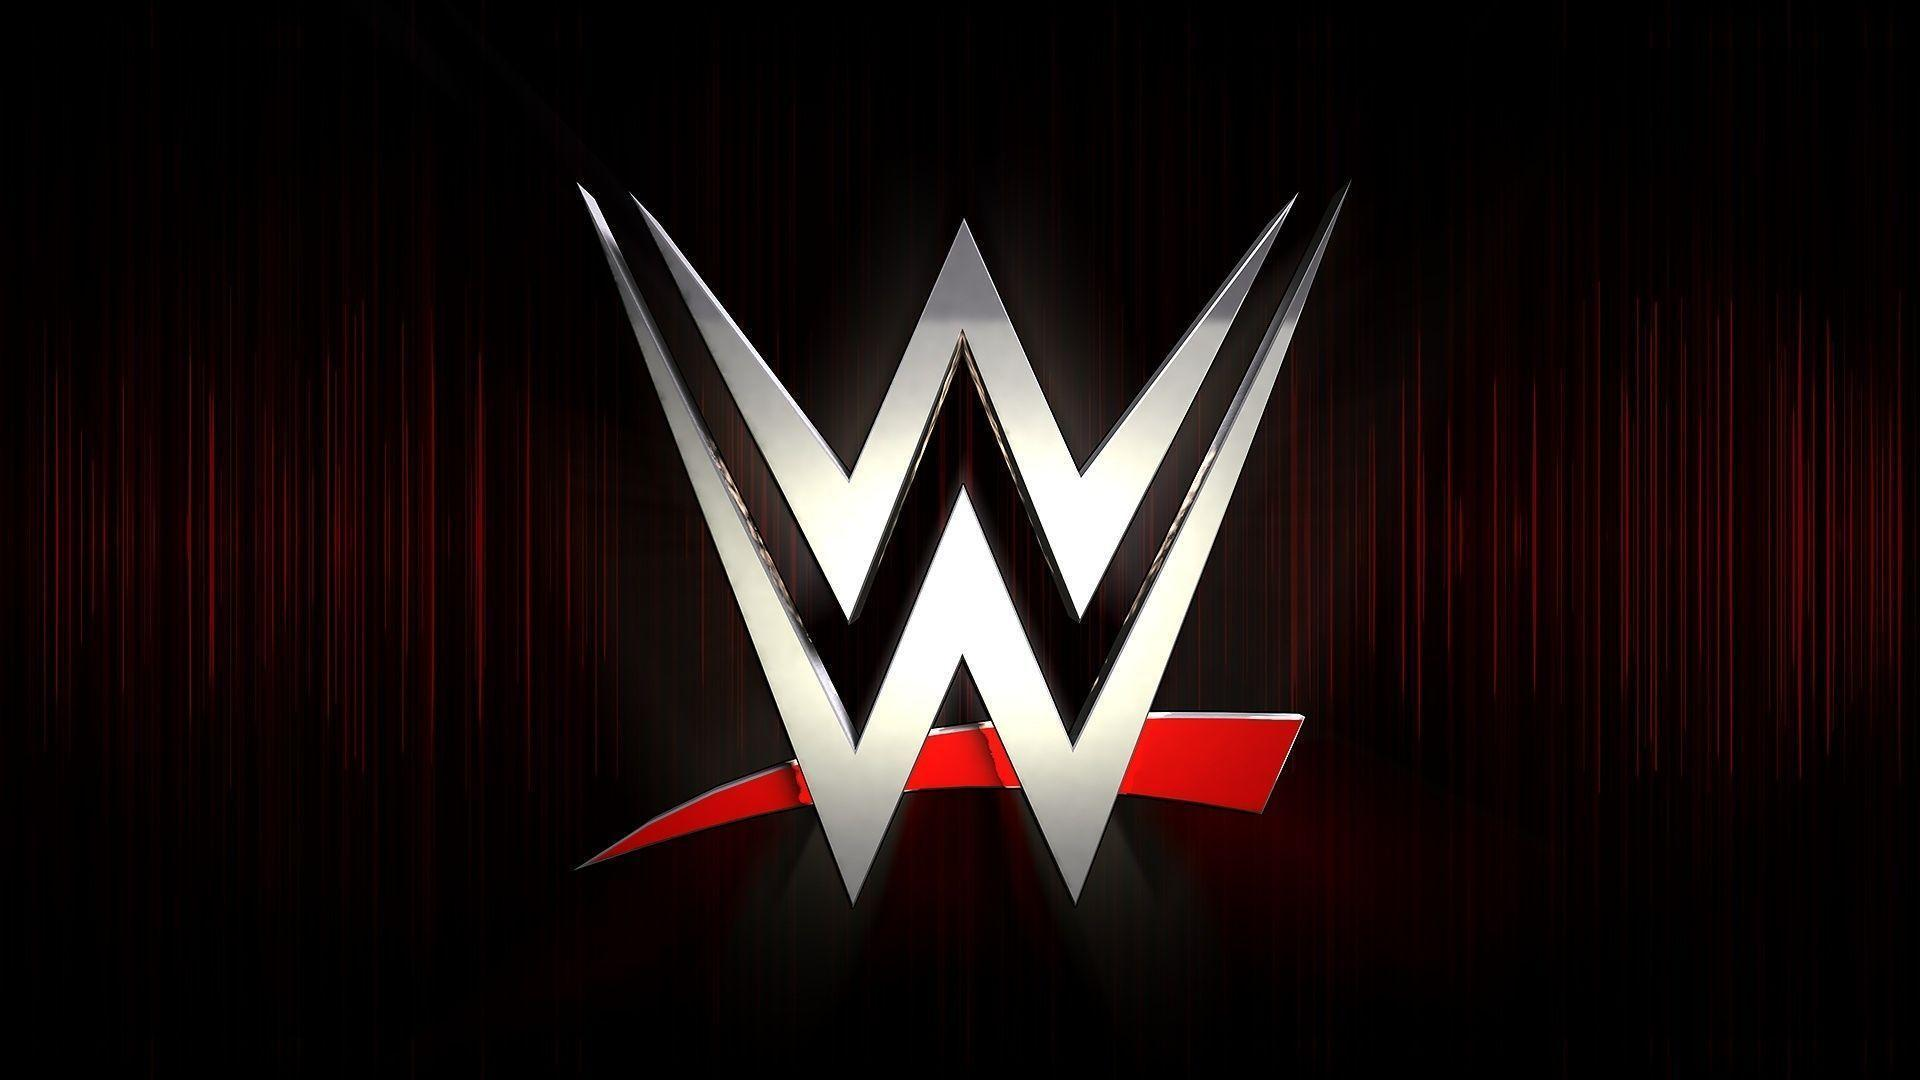 1920x1080 Wwe Wrestling Logo Wallpapers And